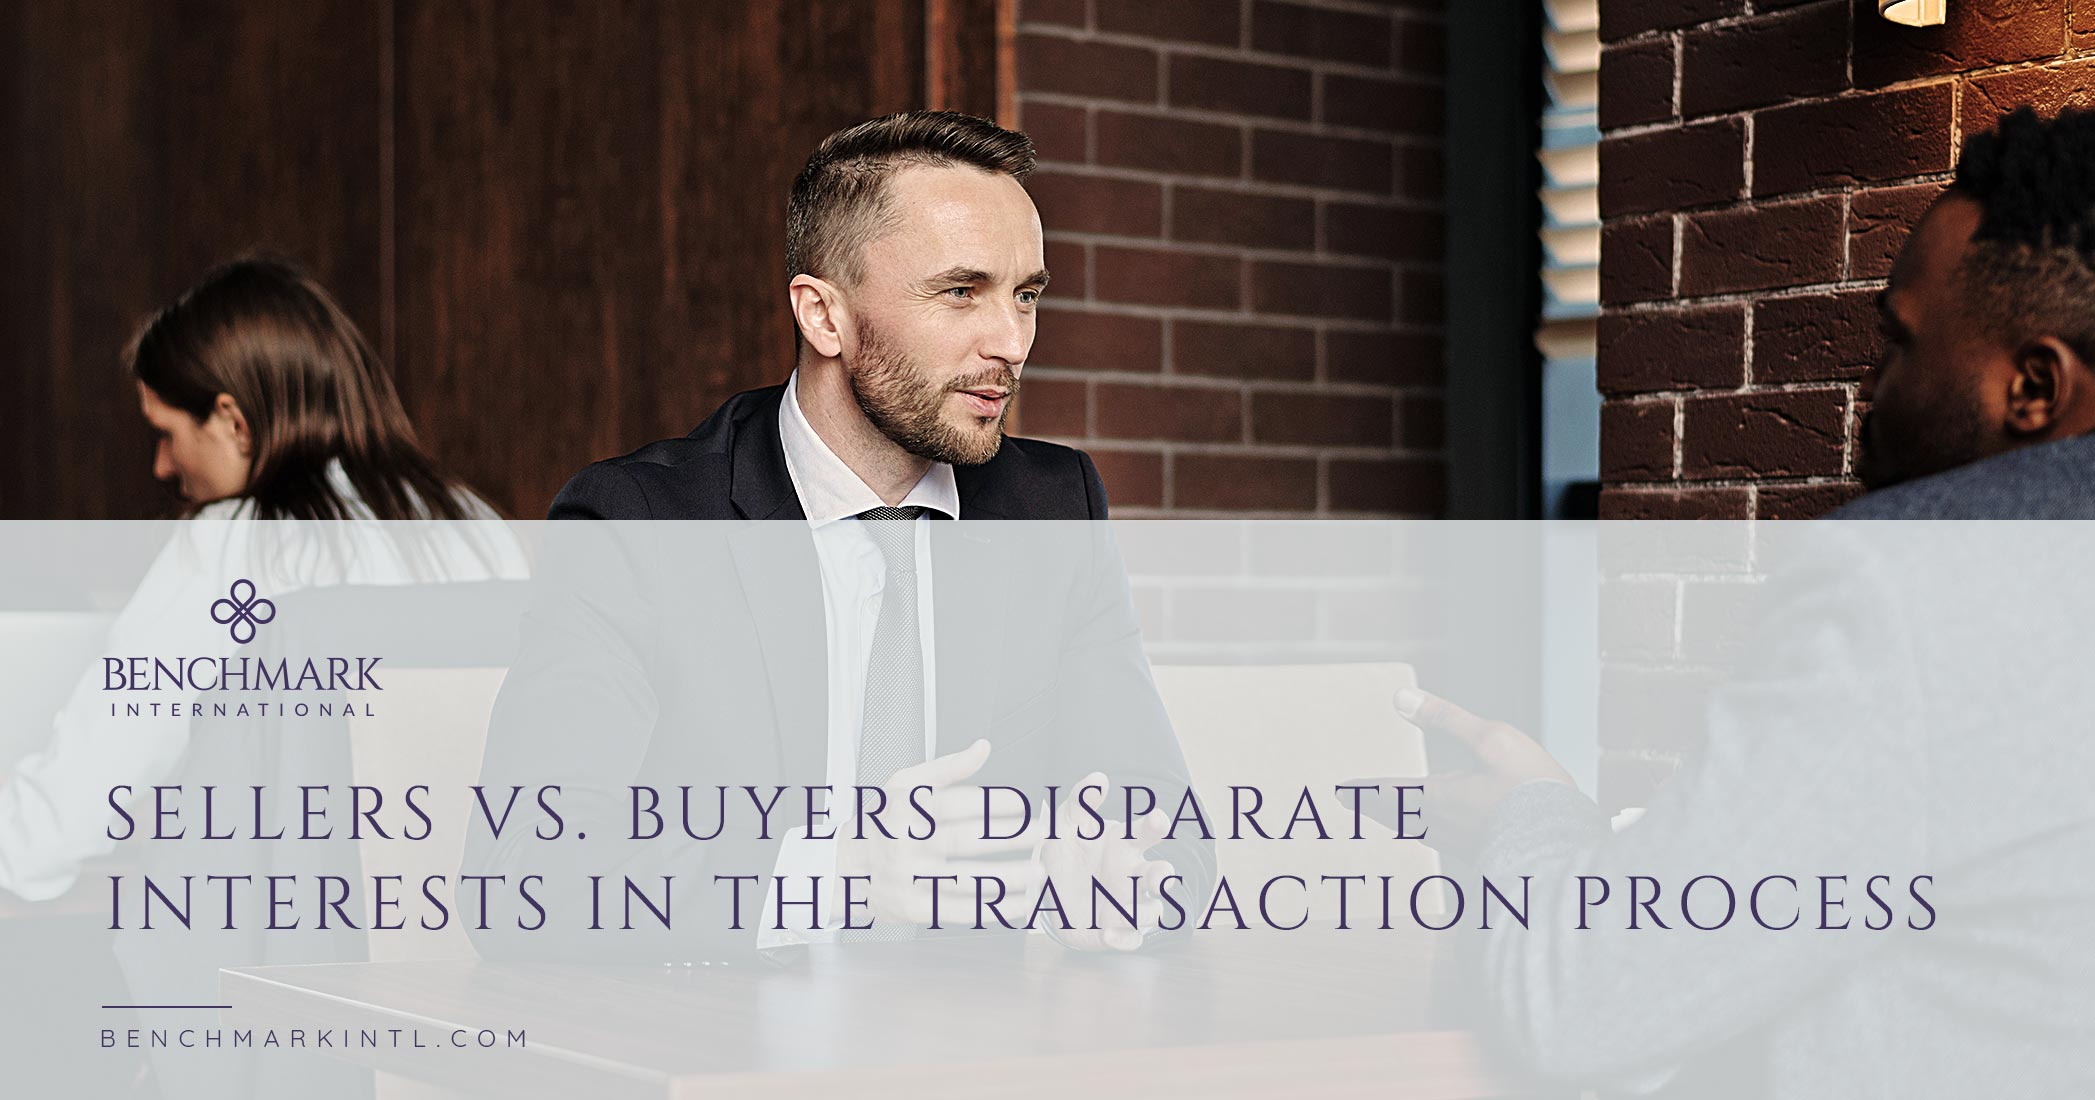 Sellers Vs. Buyers Disparate Interests in the Transaction Process